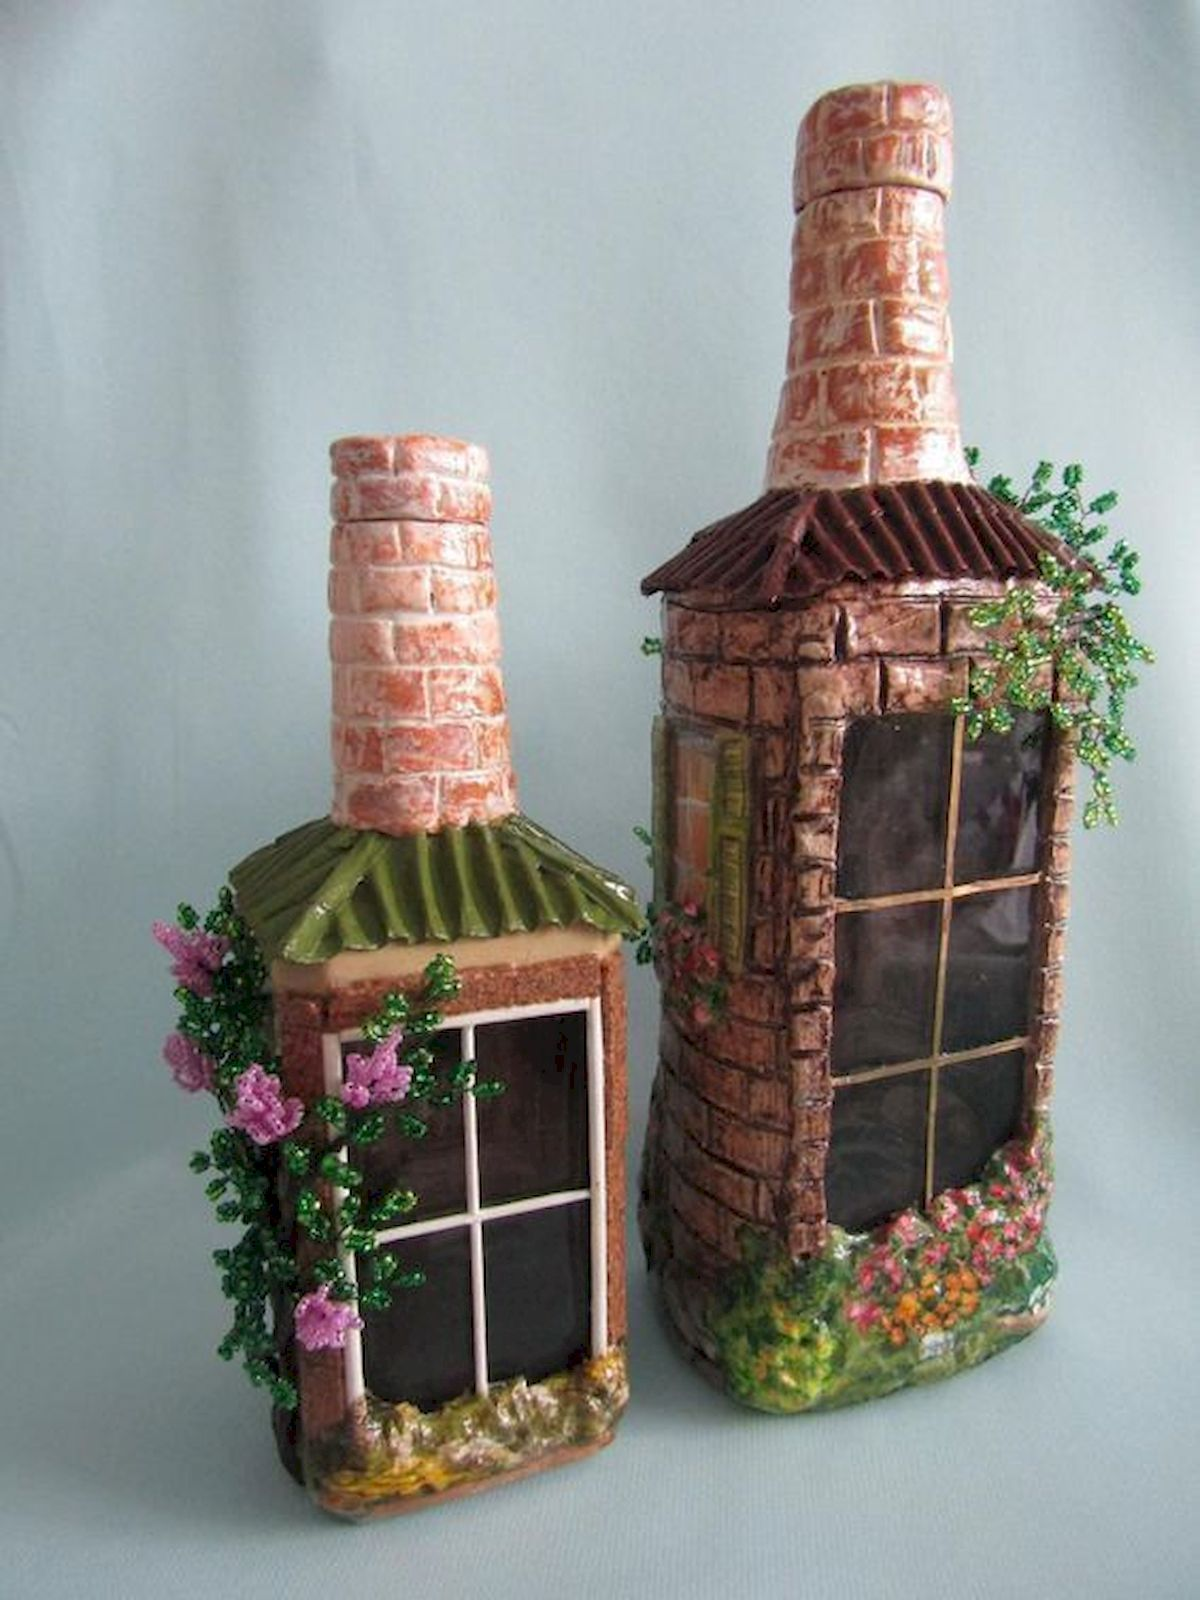 70 Amazing Diy Recycled And Upcycling Projects Ideas Glass